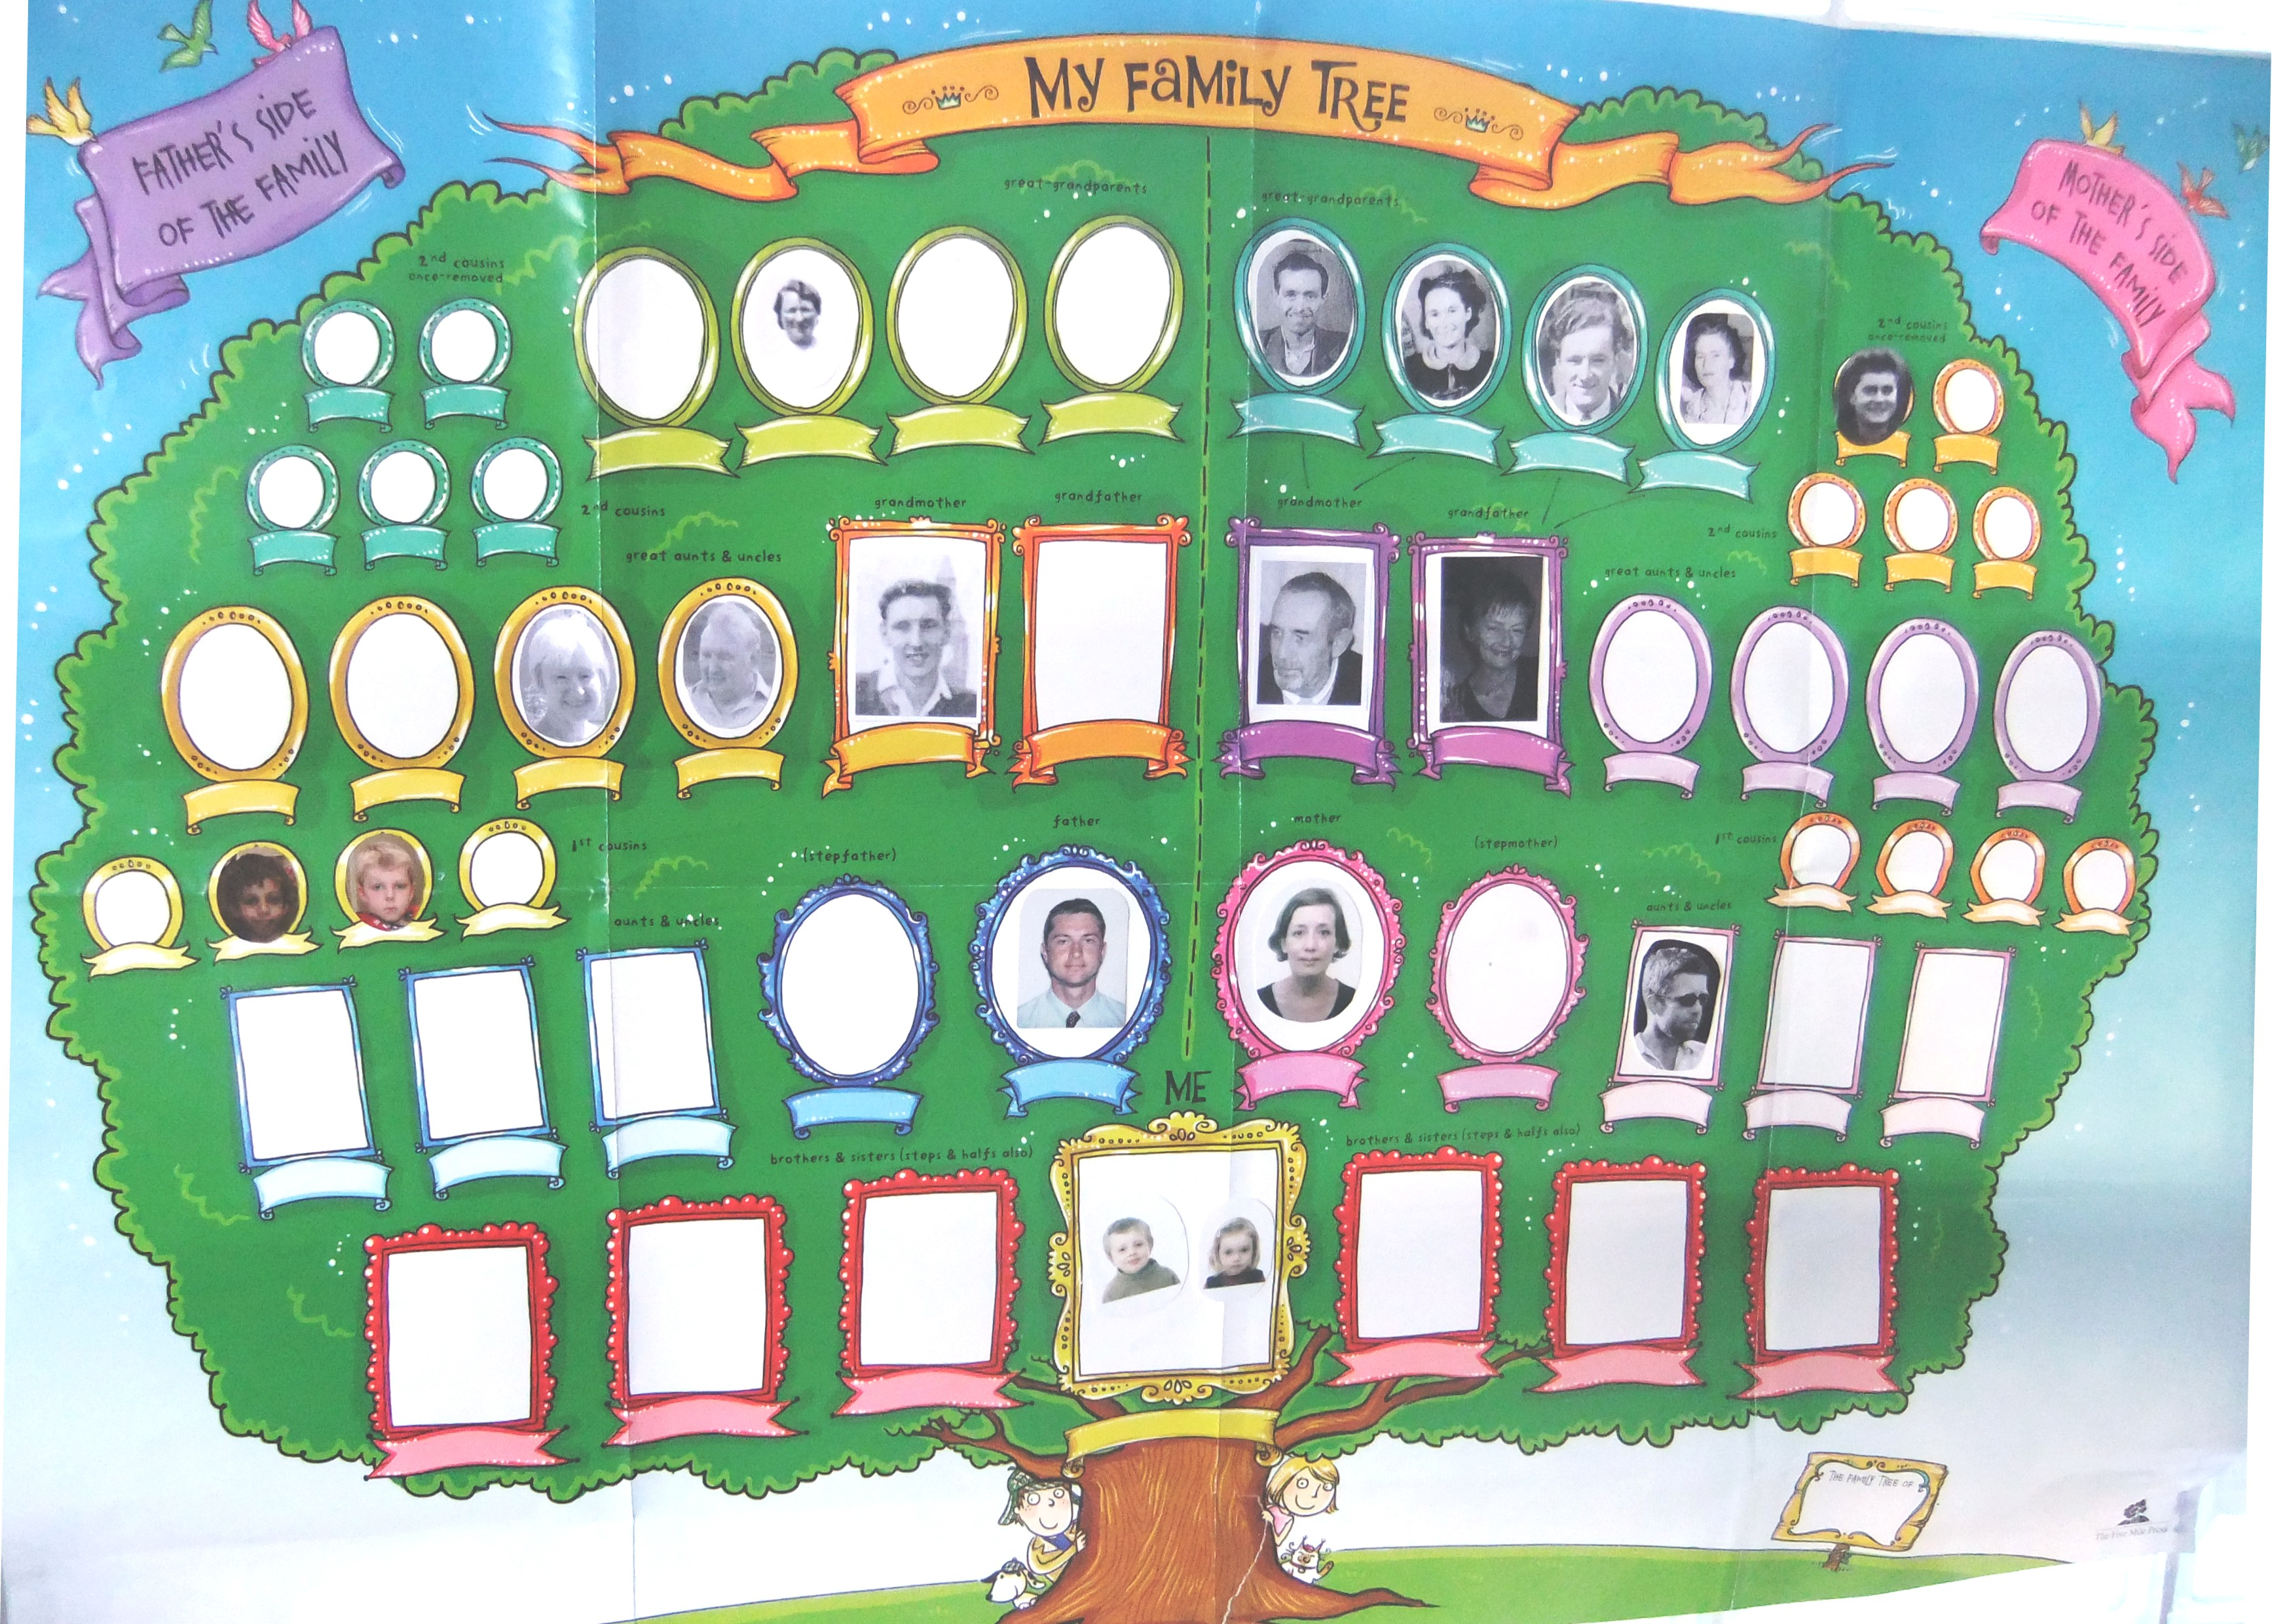 Teaching your children about the Family Tree and their ancestors ...